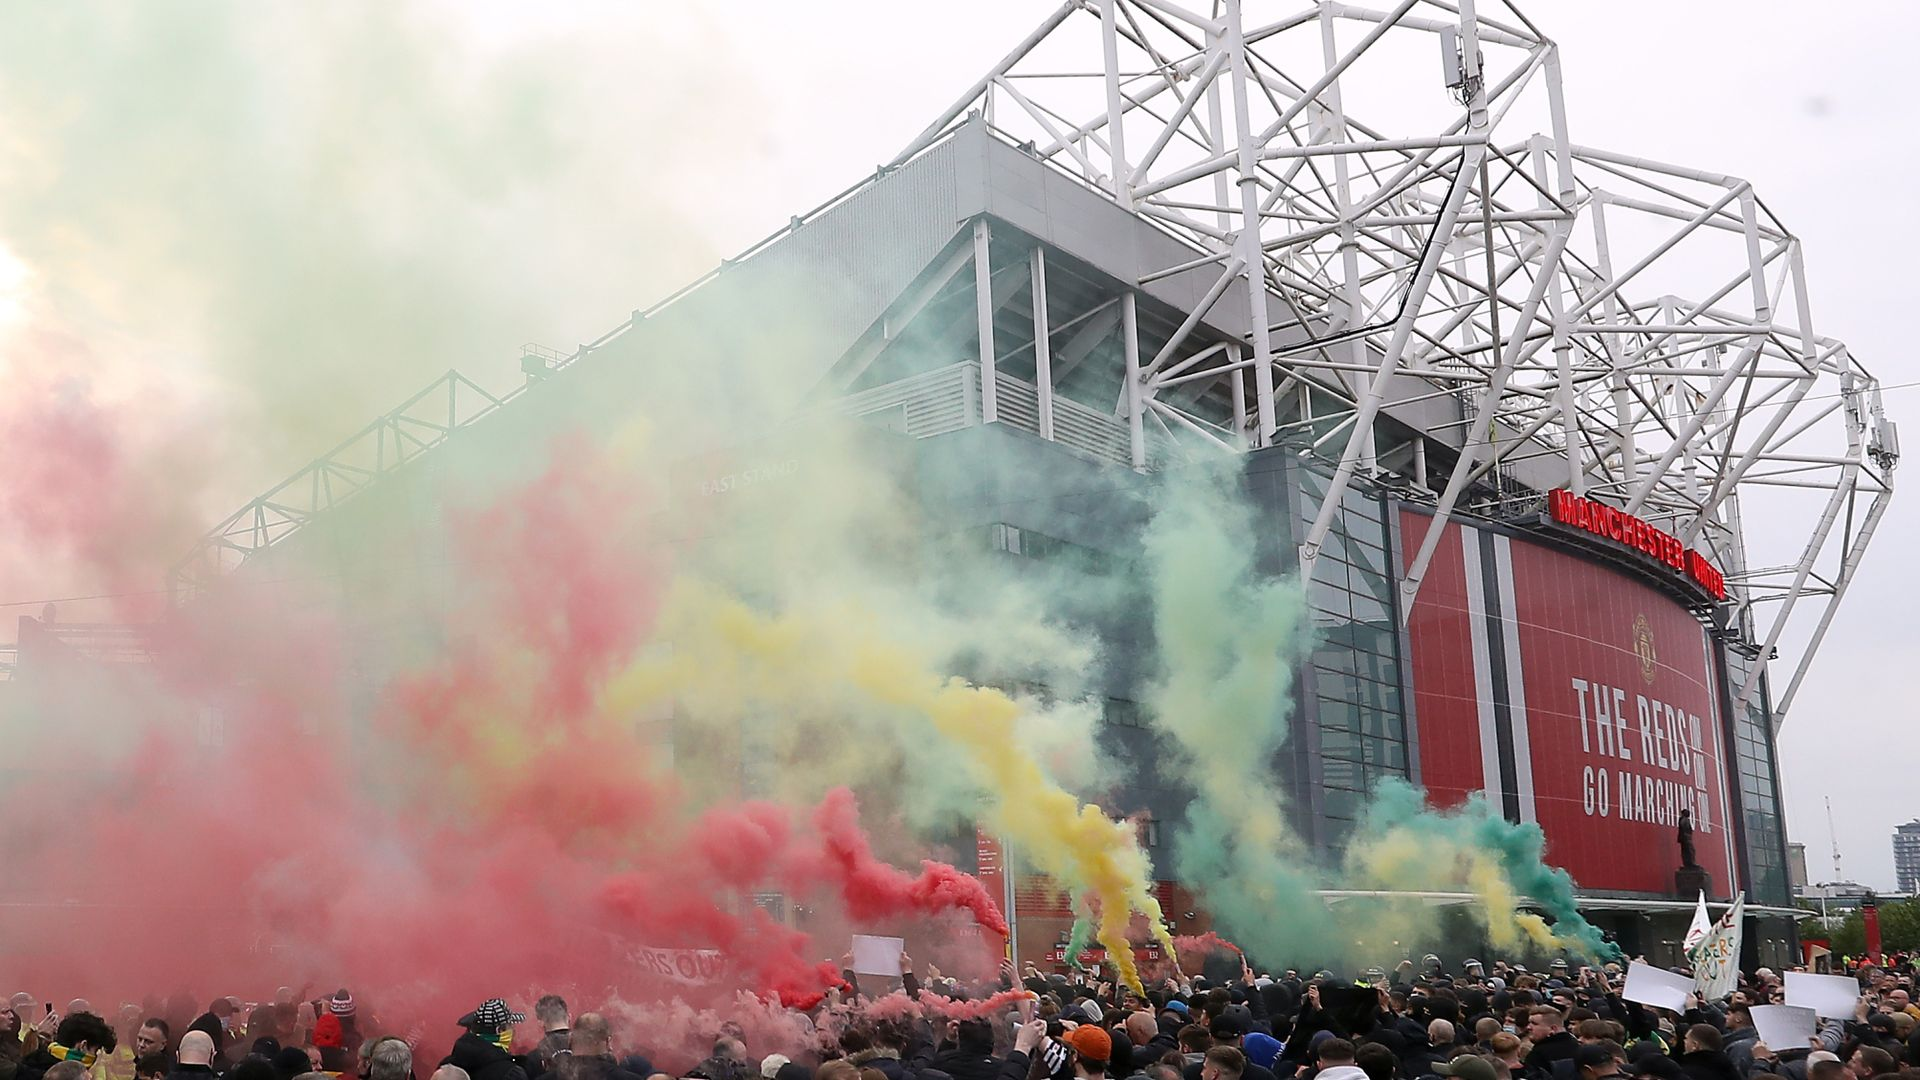 Two arrests made after fresh protests at Old Trafford